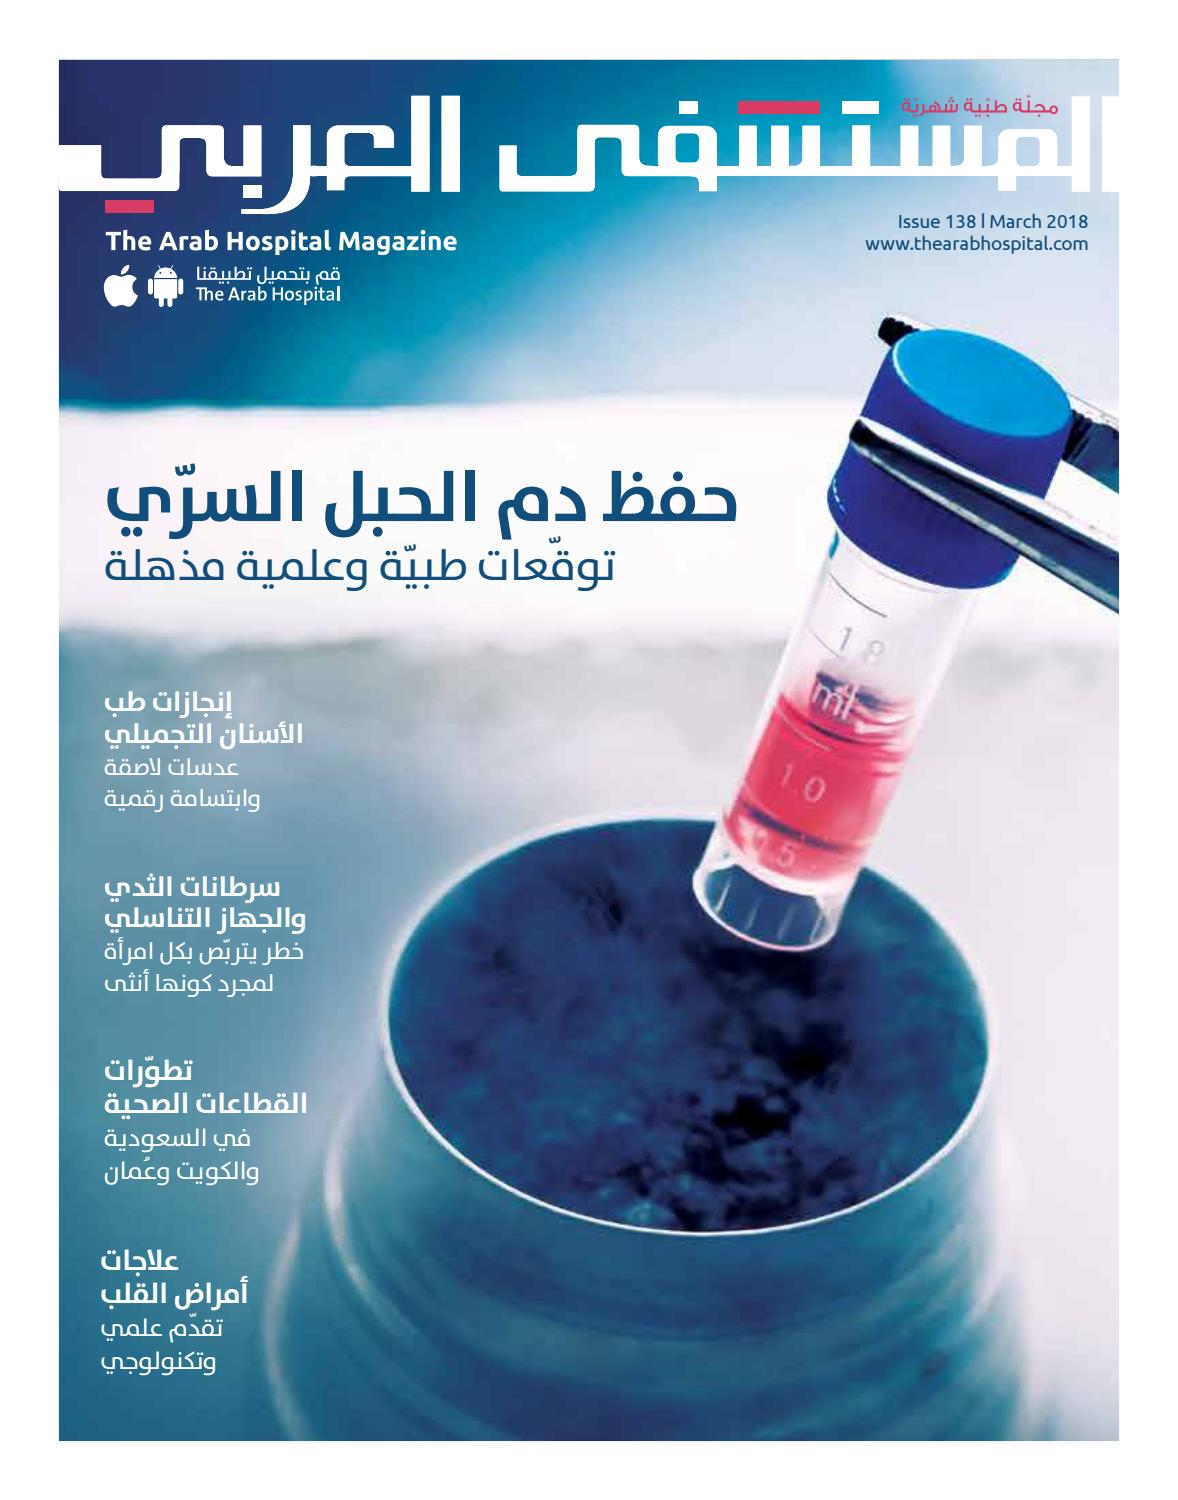 f15888fc1 The Arab Hospital Magazine issue 138 by The Arab Hospital Magazine - issuu